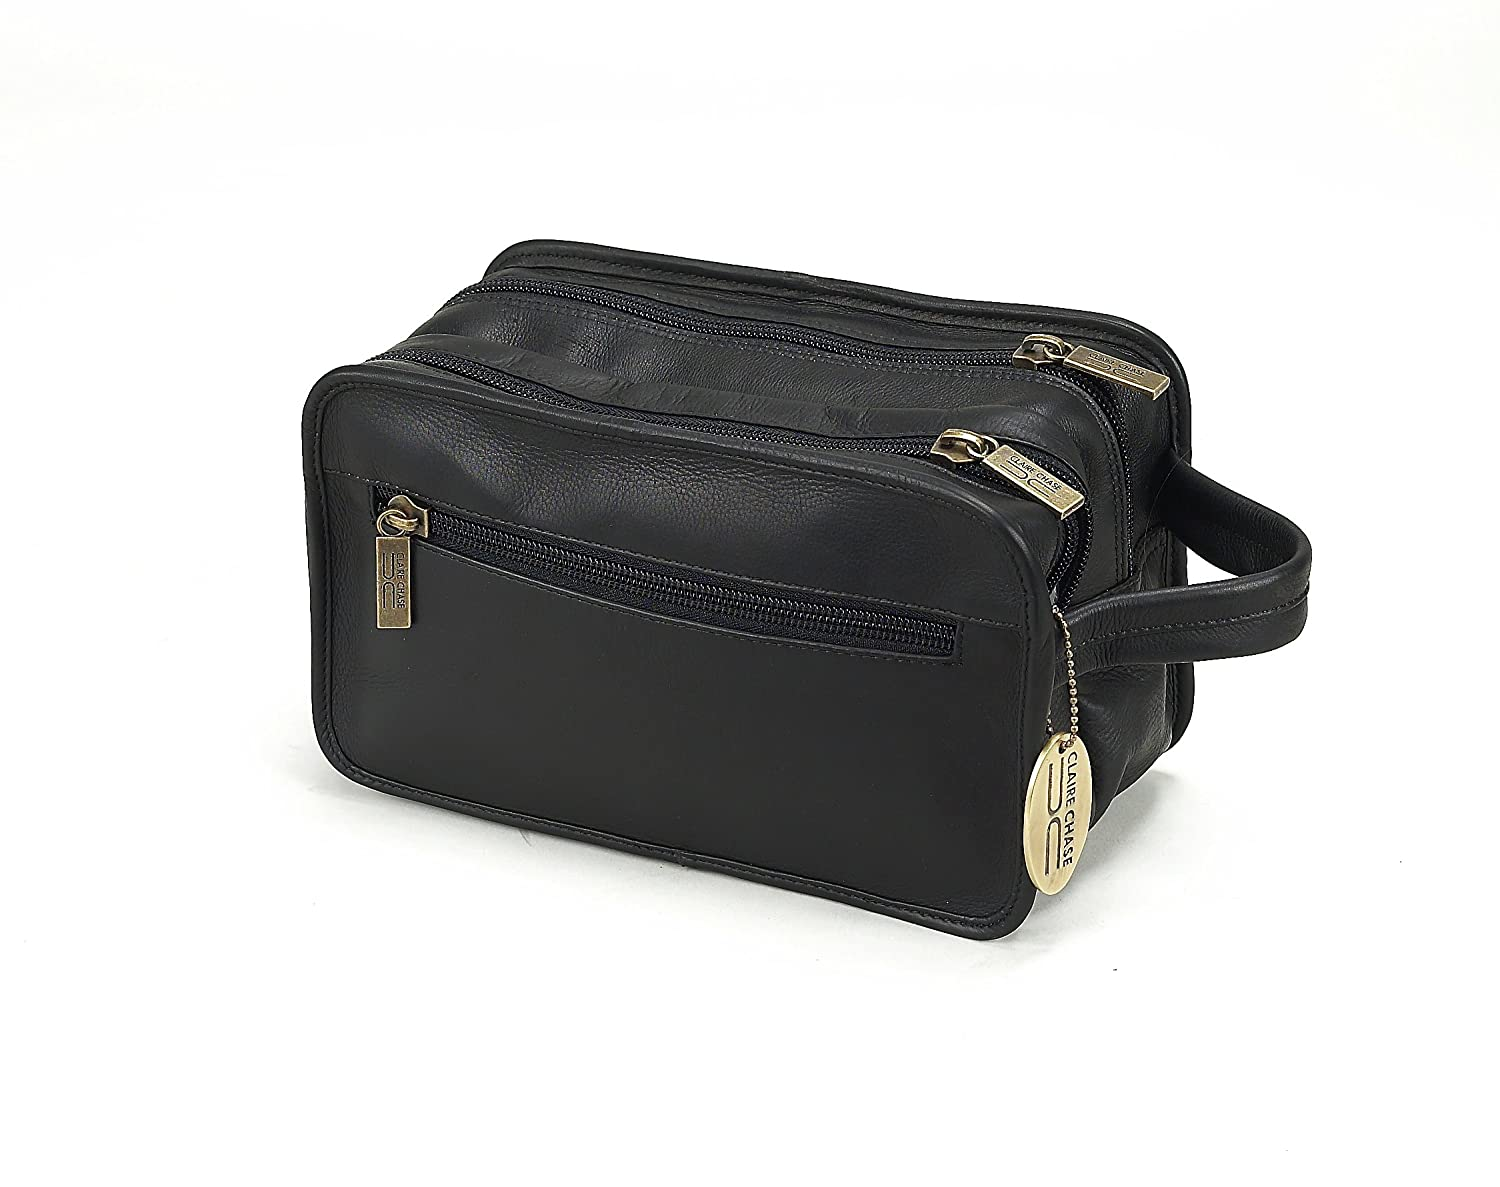 Claire Chase Luxury Travel Kit, Black, One Size